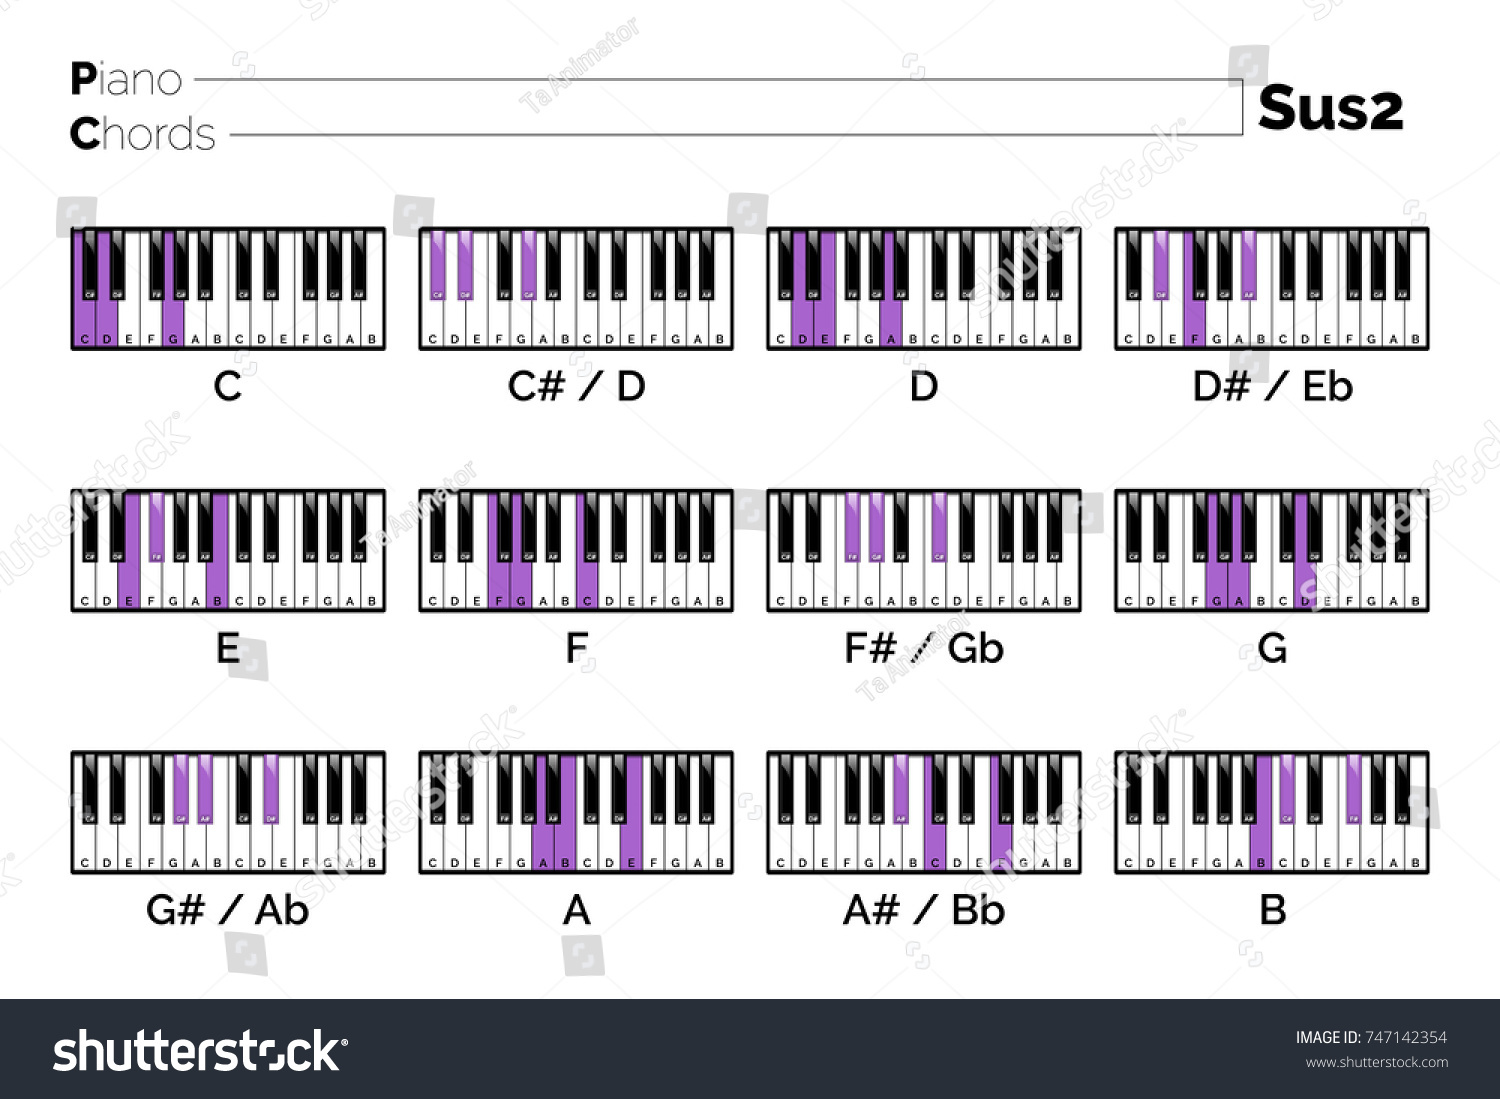 Piano Chord Sus15 Chart Graphic Music Stock Vector Royalty Free ...